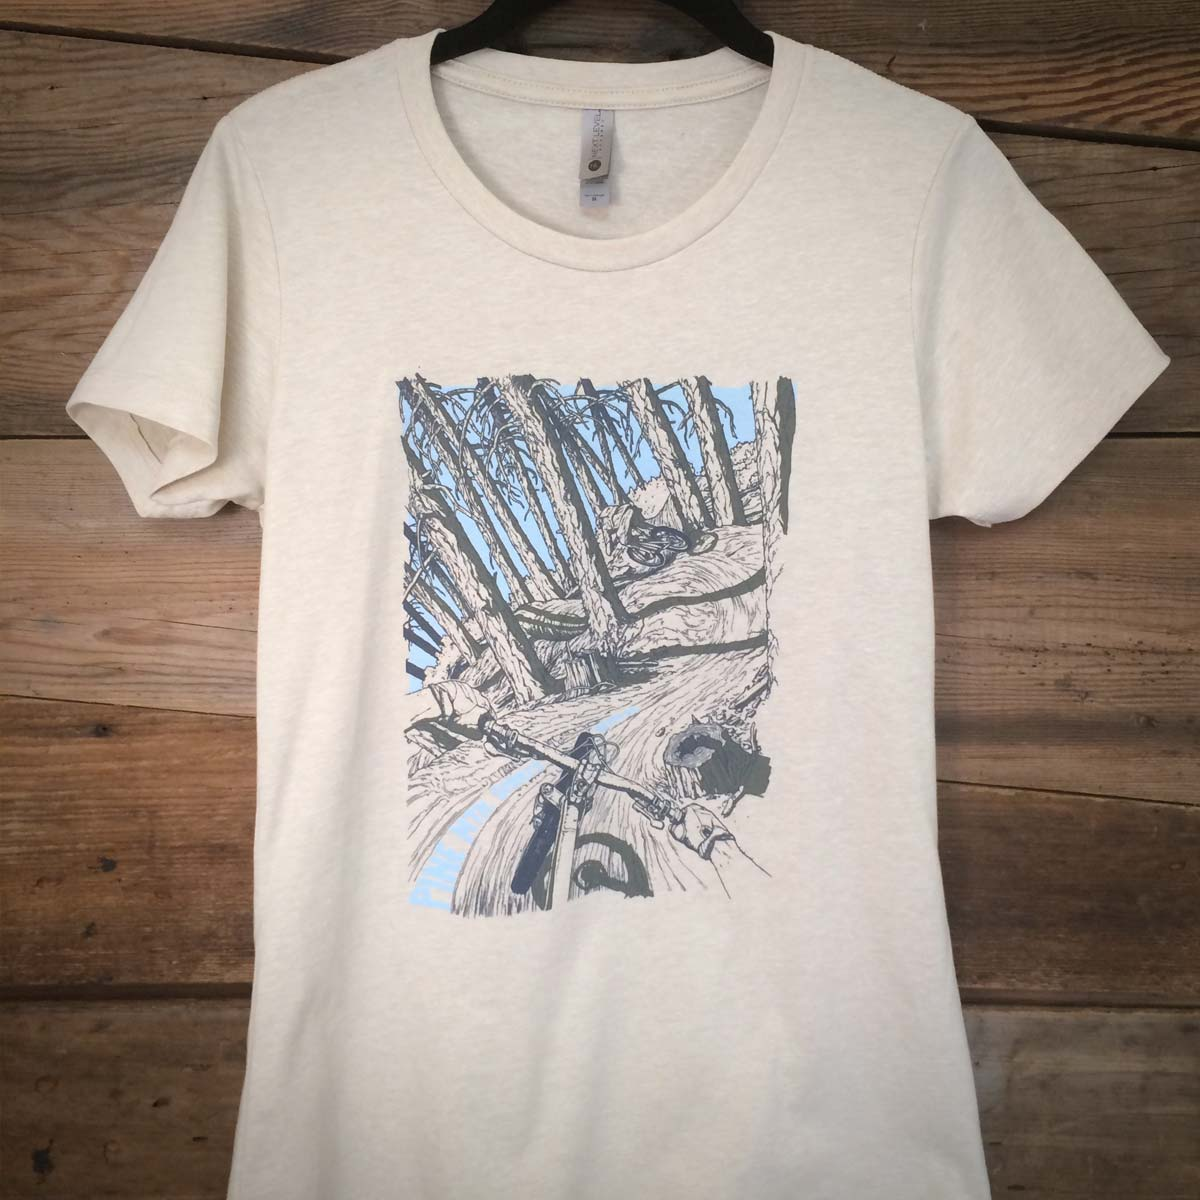 Pine Mountain T-Shirt